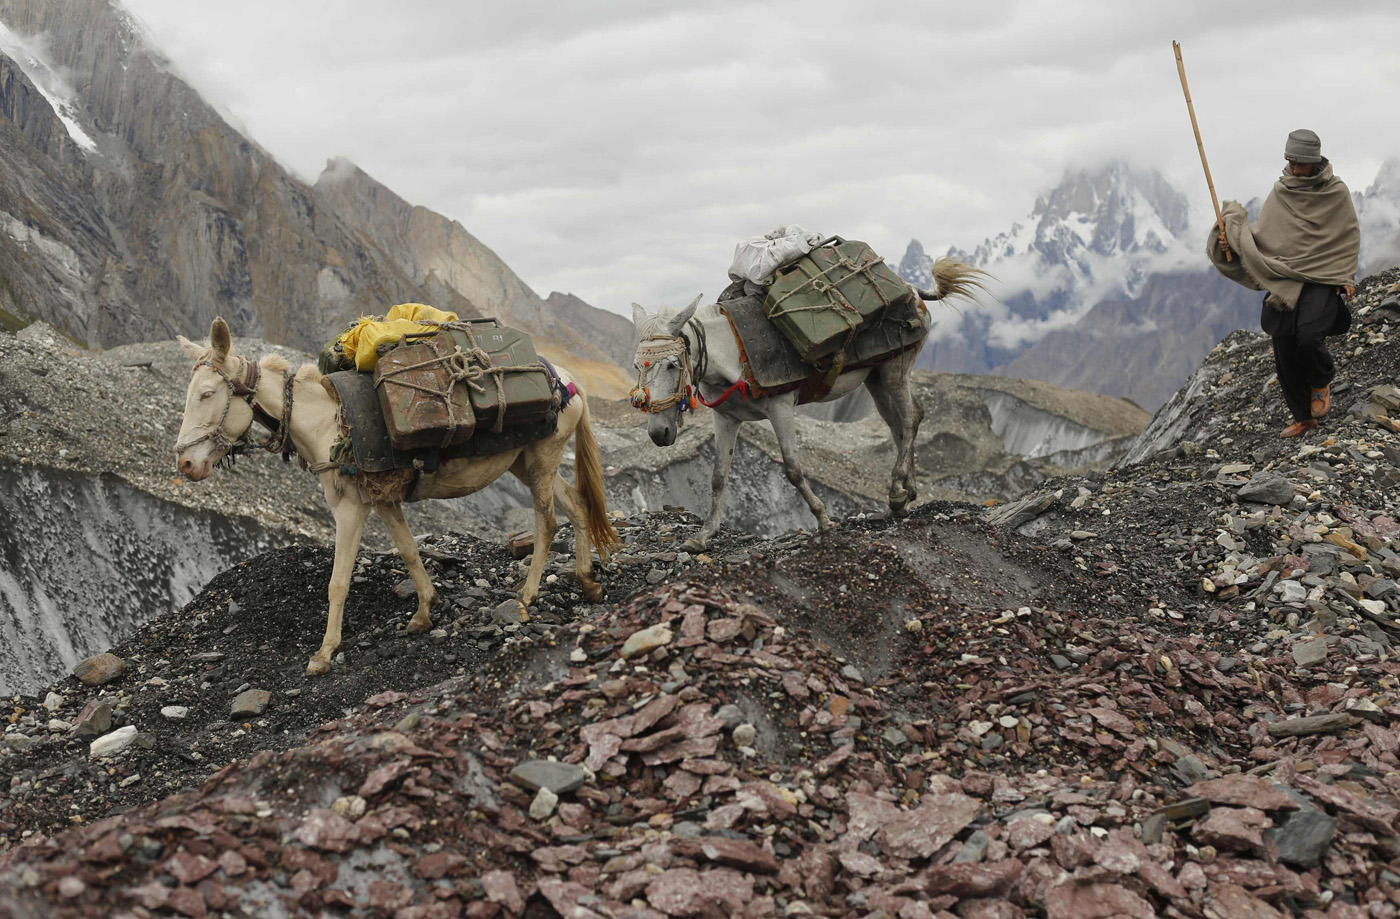 Hiking the trails on Northern Pakistan's second tallest mountain